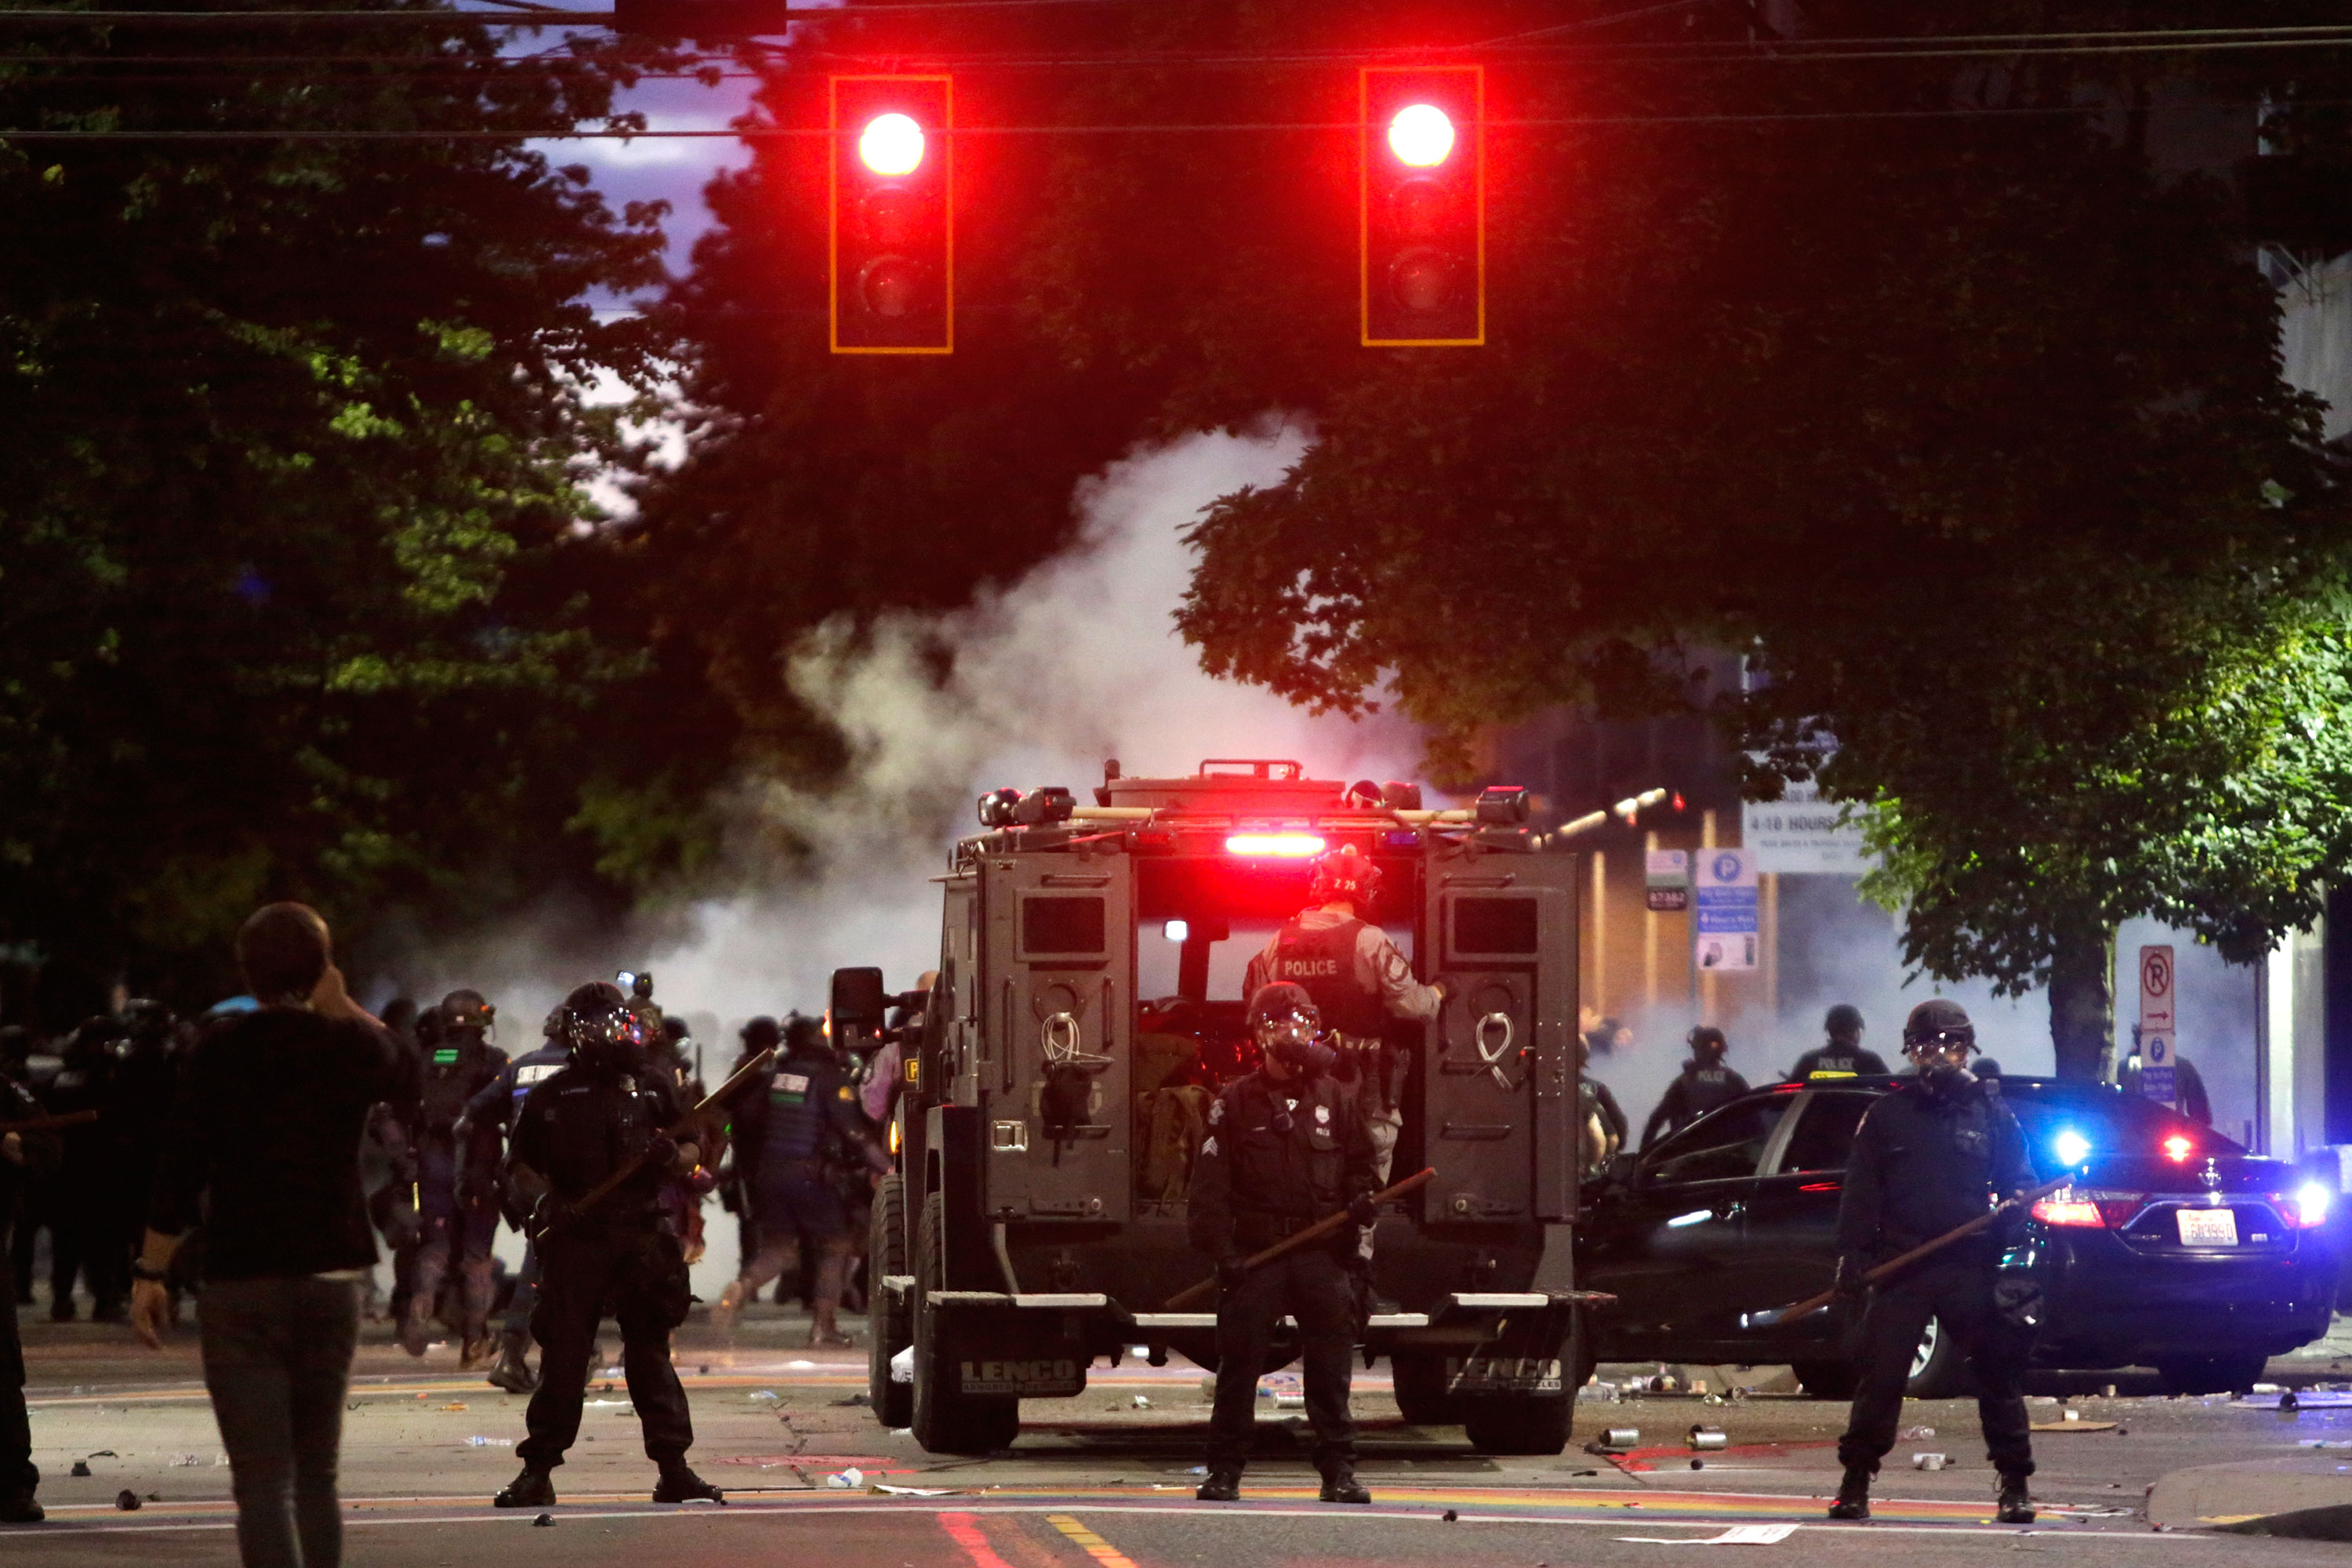 Police patrol after dispersing a protest on Monday night in Seattle.